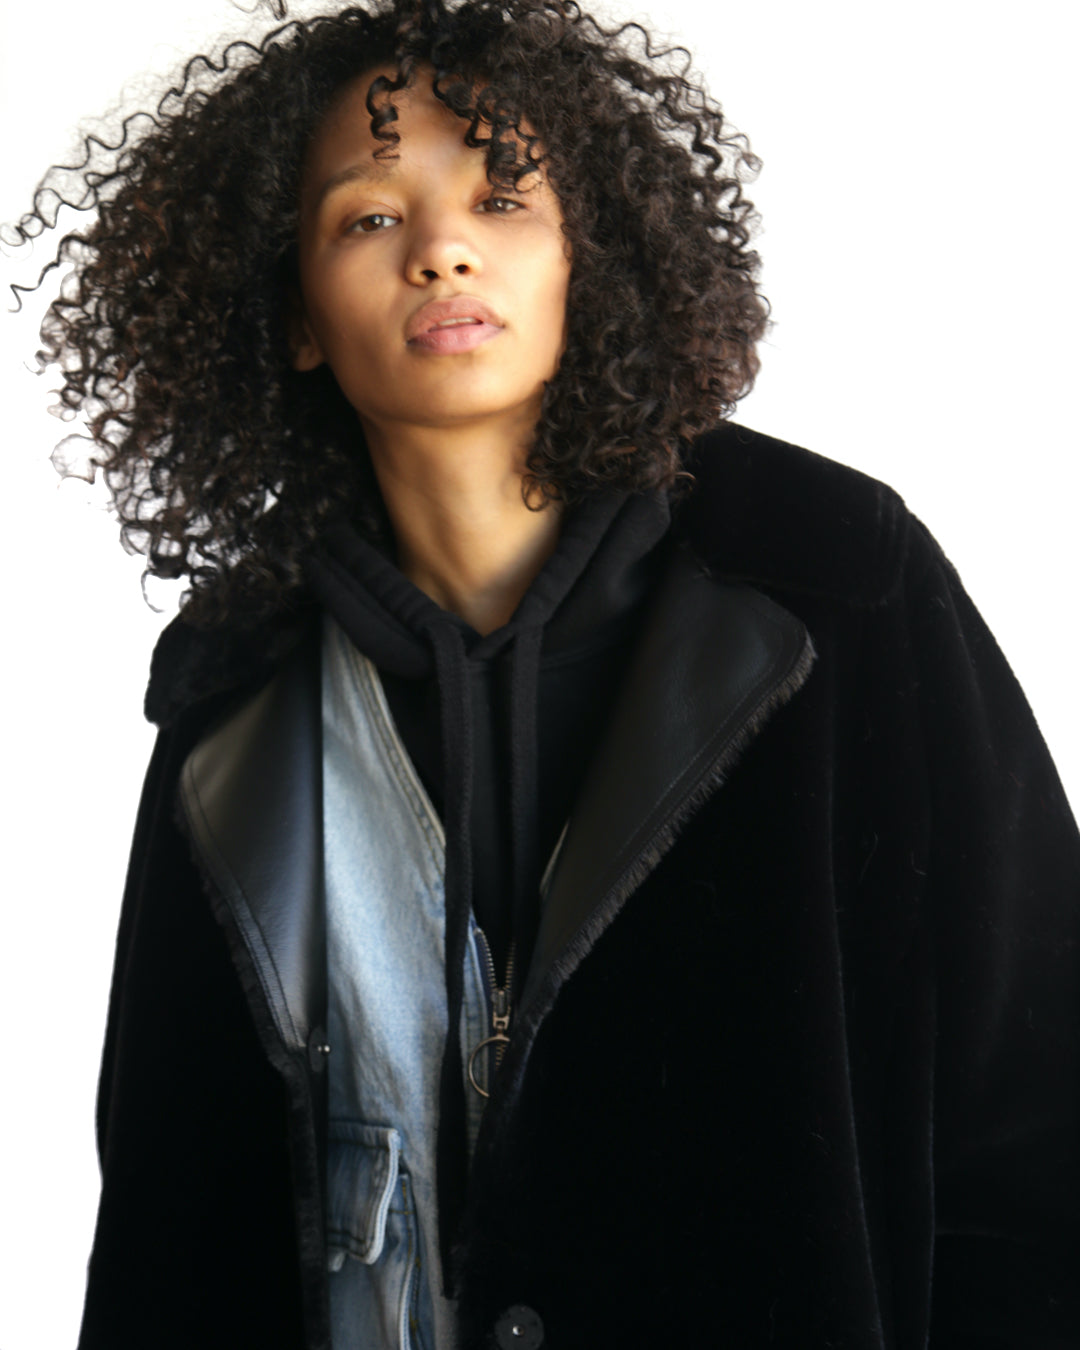 Teddy Reversible Coat - House of Fluff